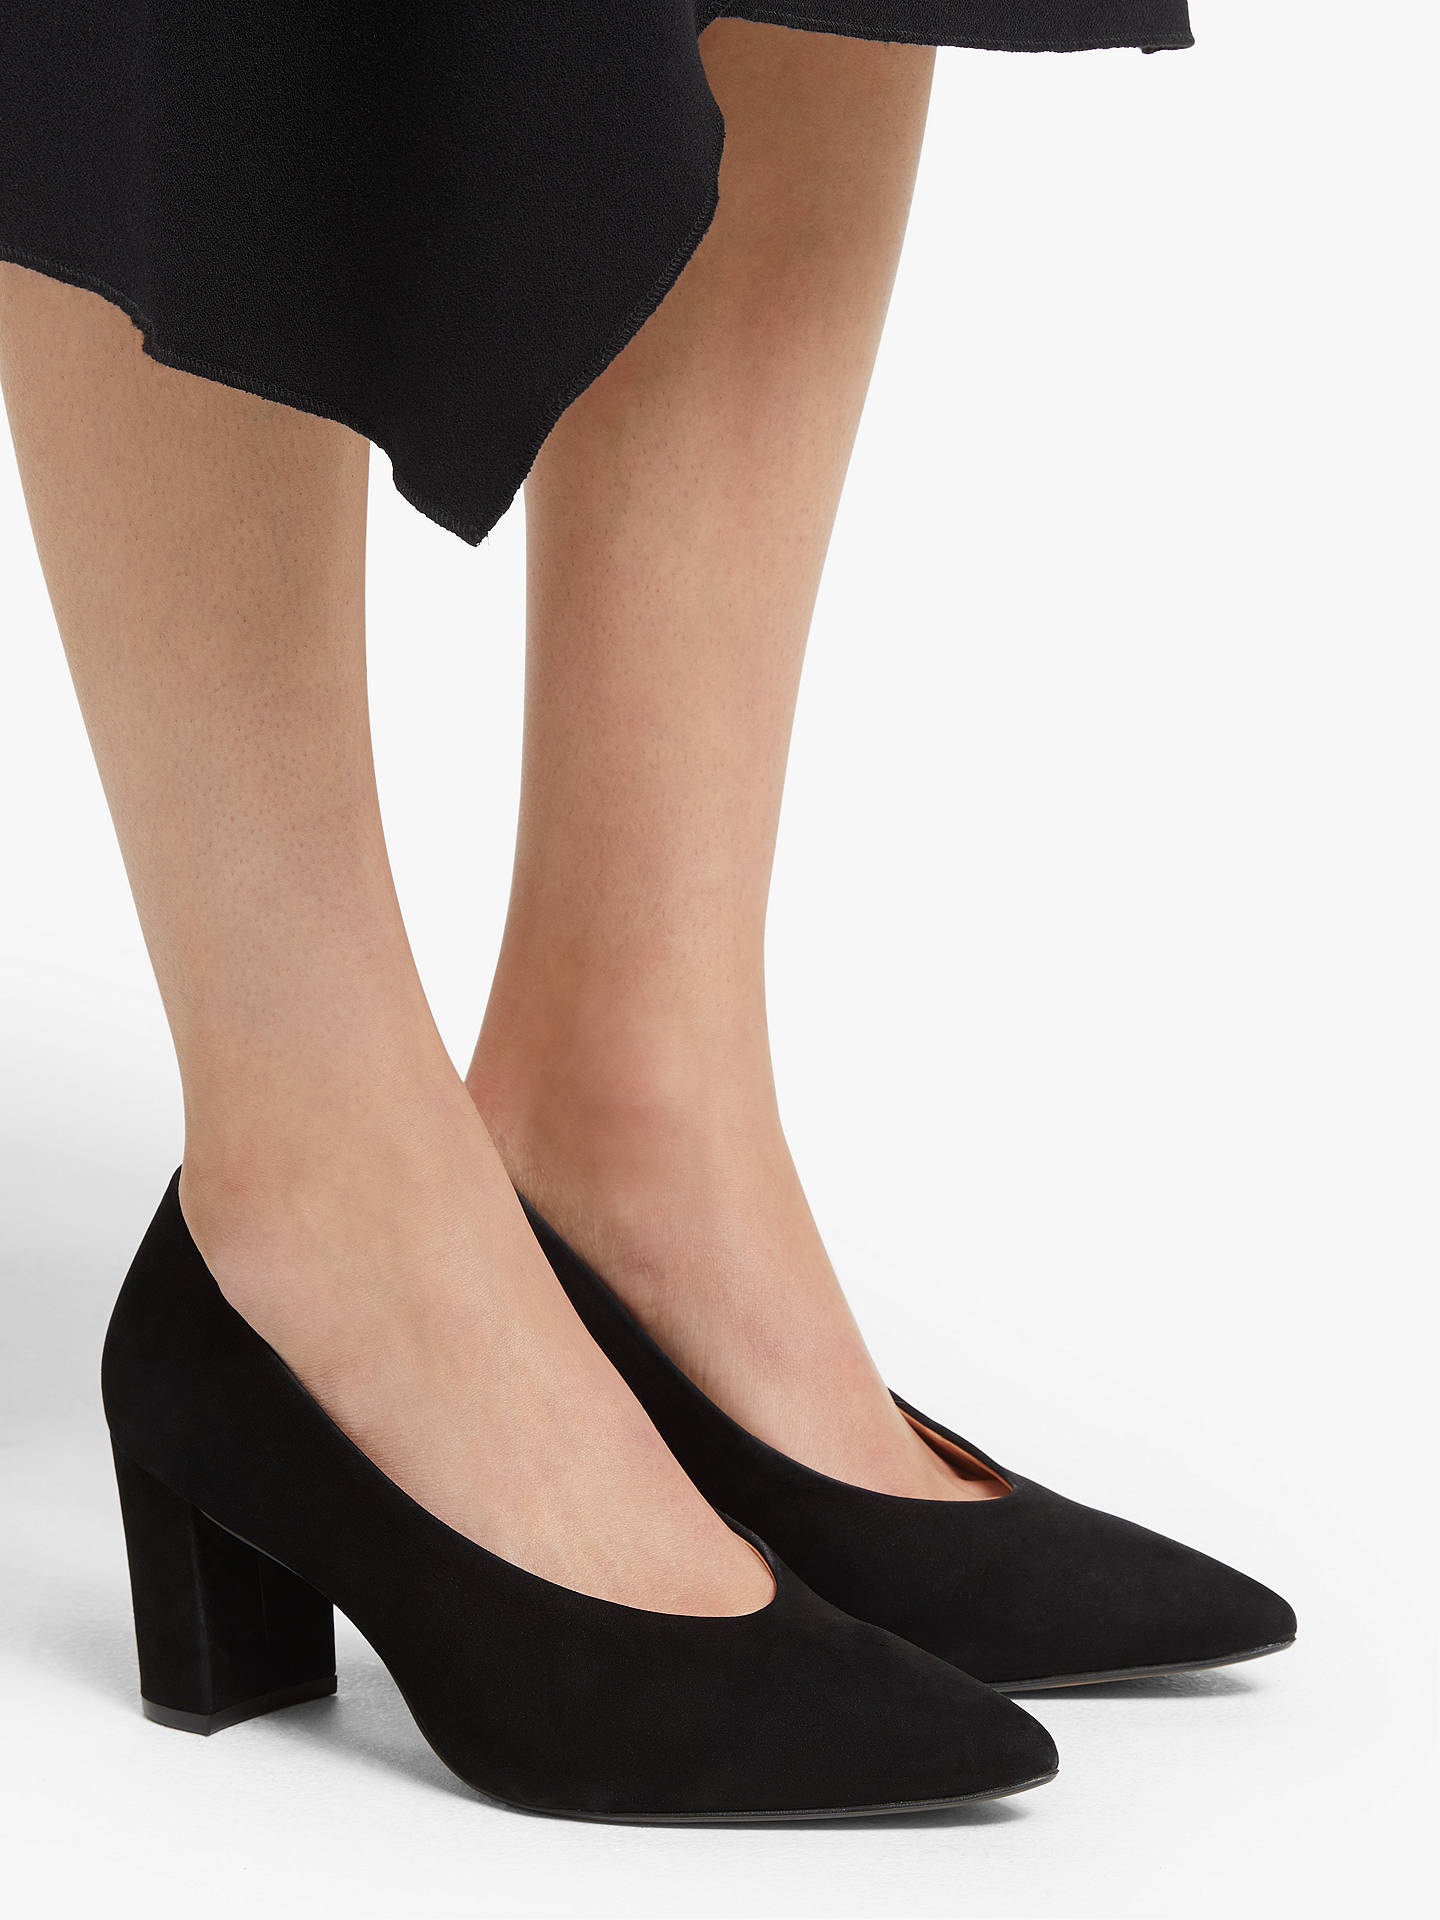 Buy John Lewis & Partners Alannah Court Shoes, Black, 8 Online at johnlewis.com